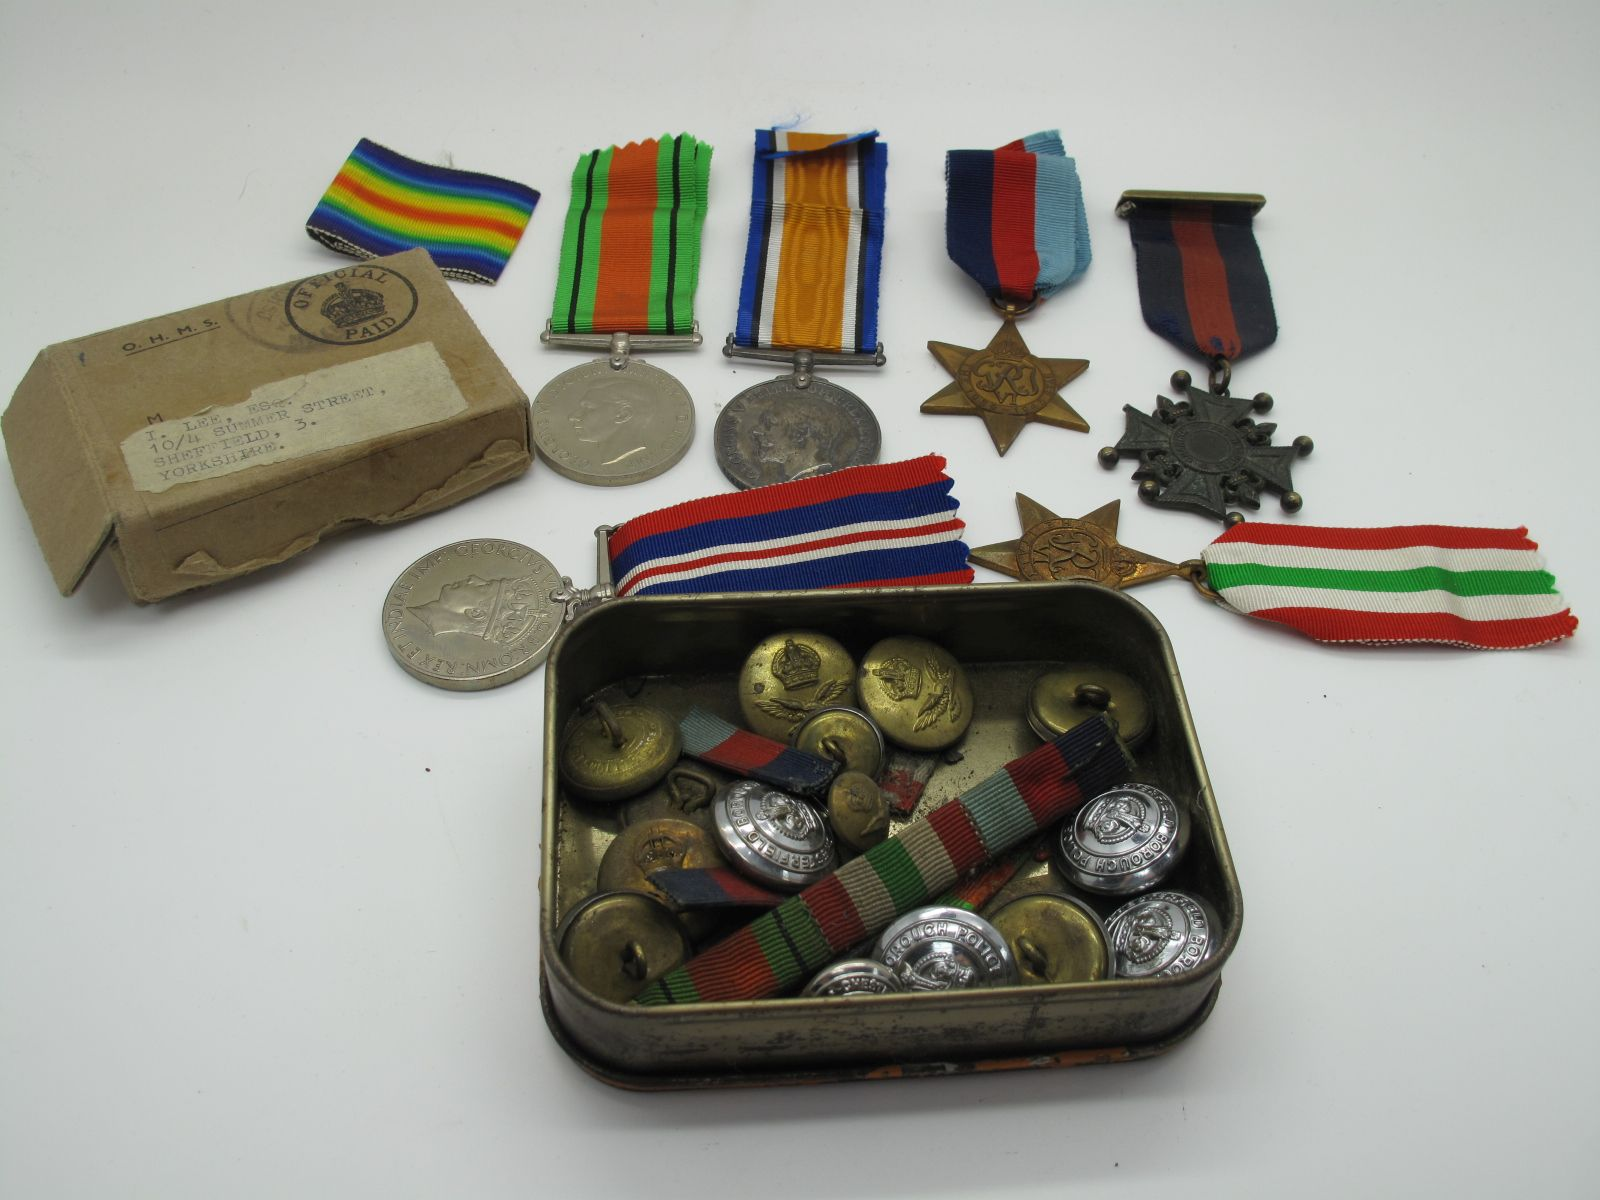 A WWI War Medal to 33458 Pte I Lee, Machine Gun Corps, plus a WWII Group of four medals comprising